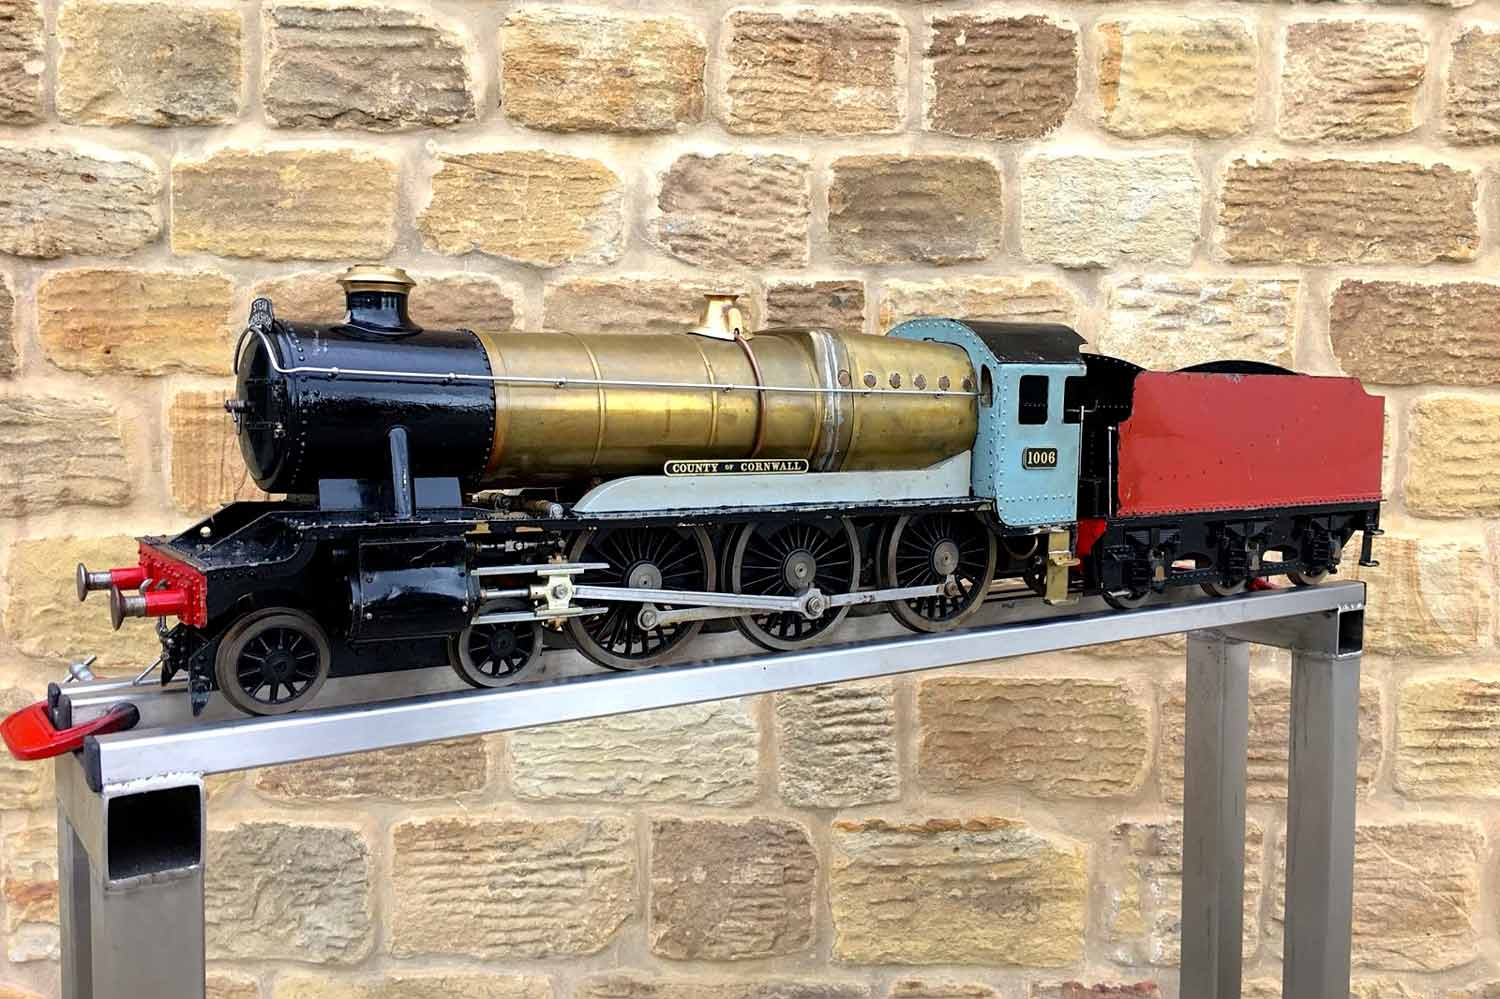 test 3-and-a-half-inch-gauge-GWR-County-Hawksworth-live-steam-locomotive-for-sale-21